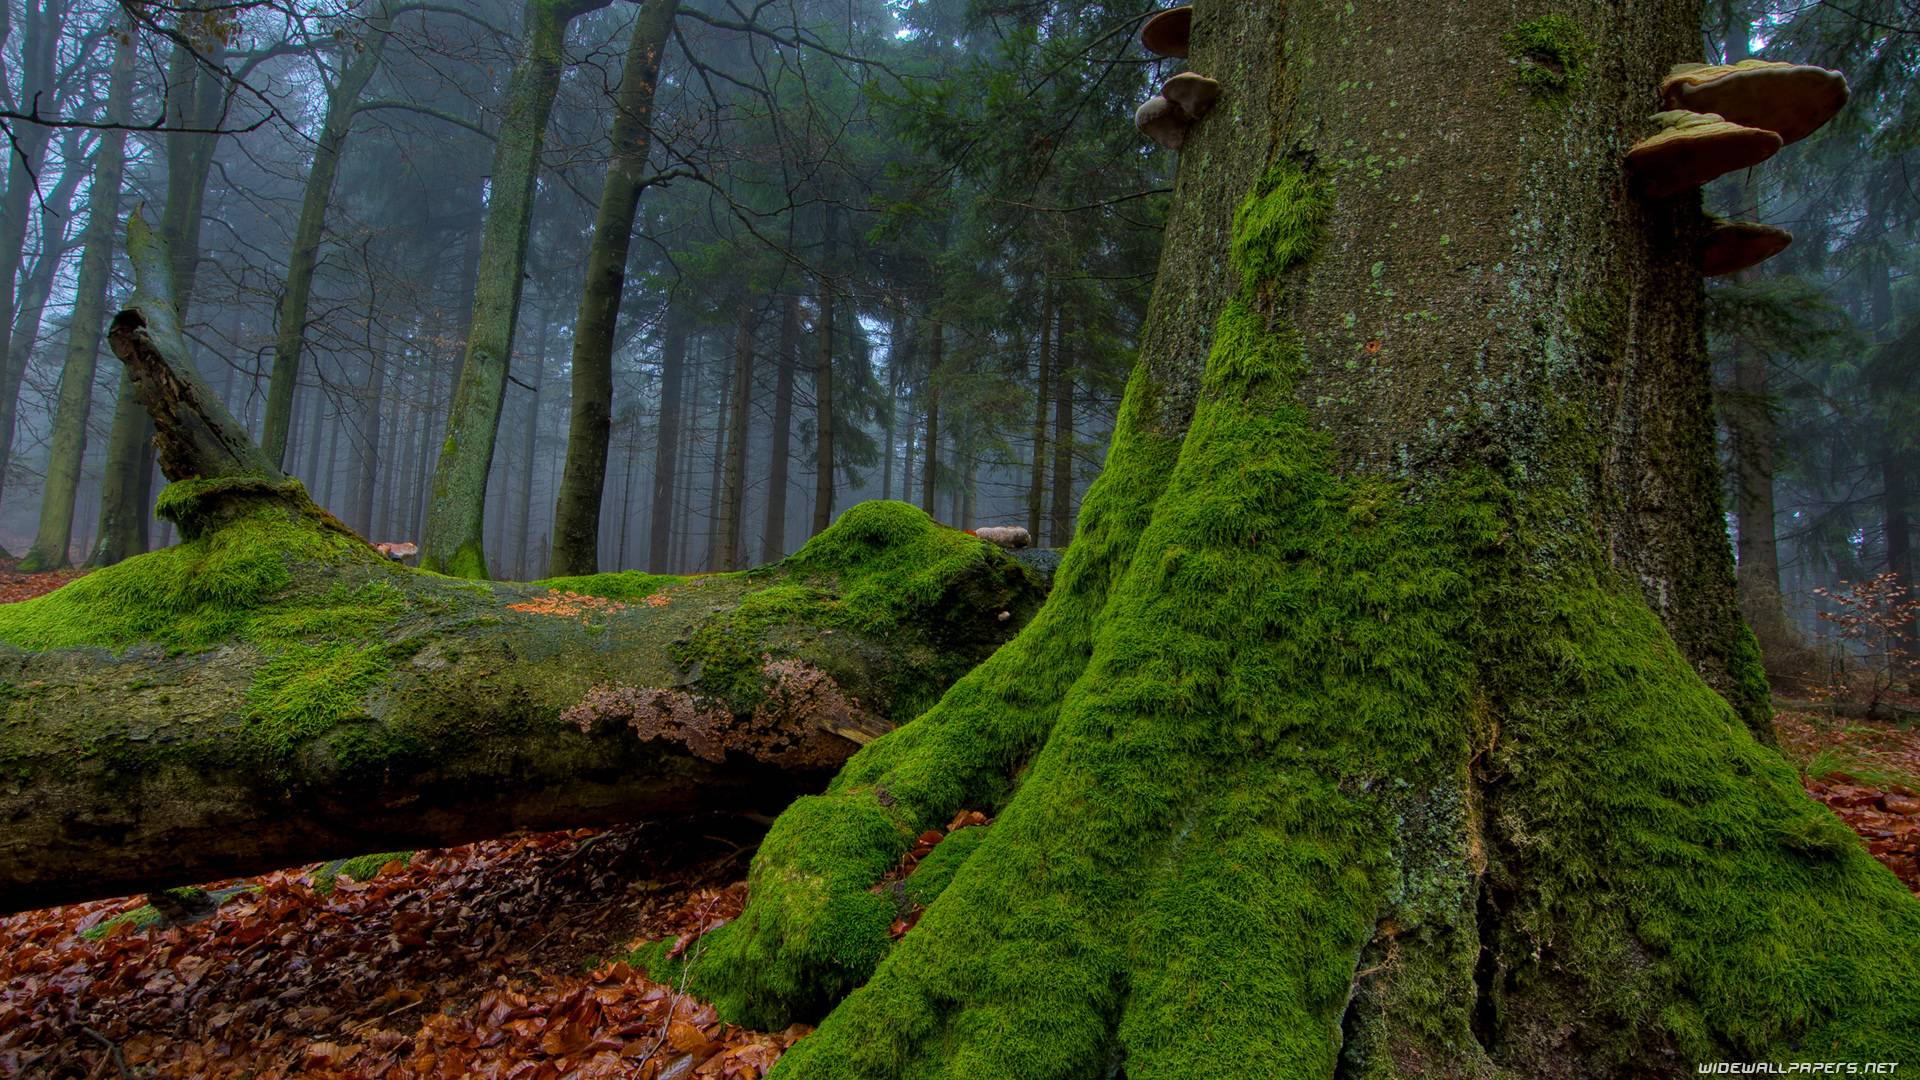 Forest Hd Wallpapers 4pda Wallpapers